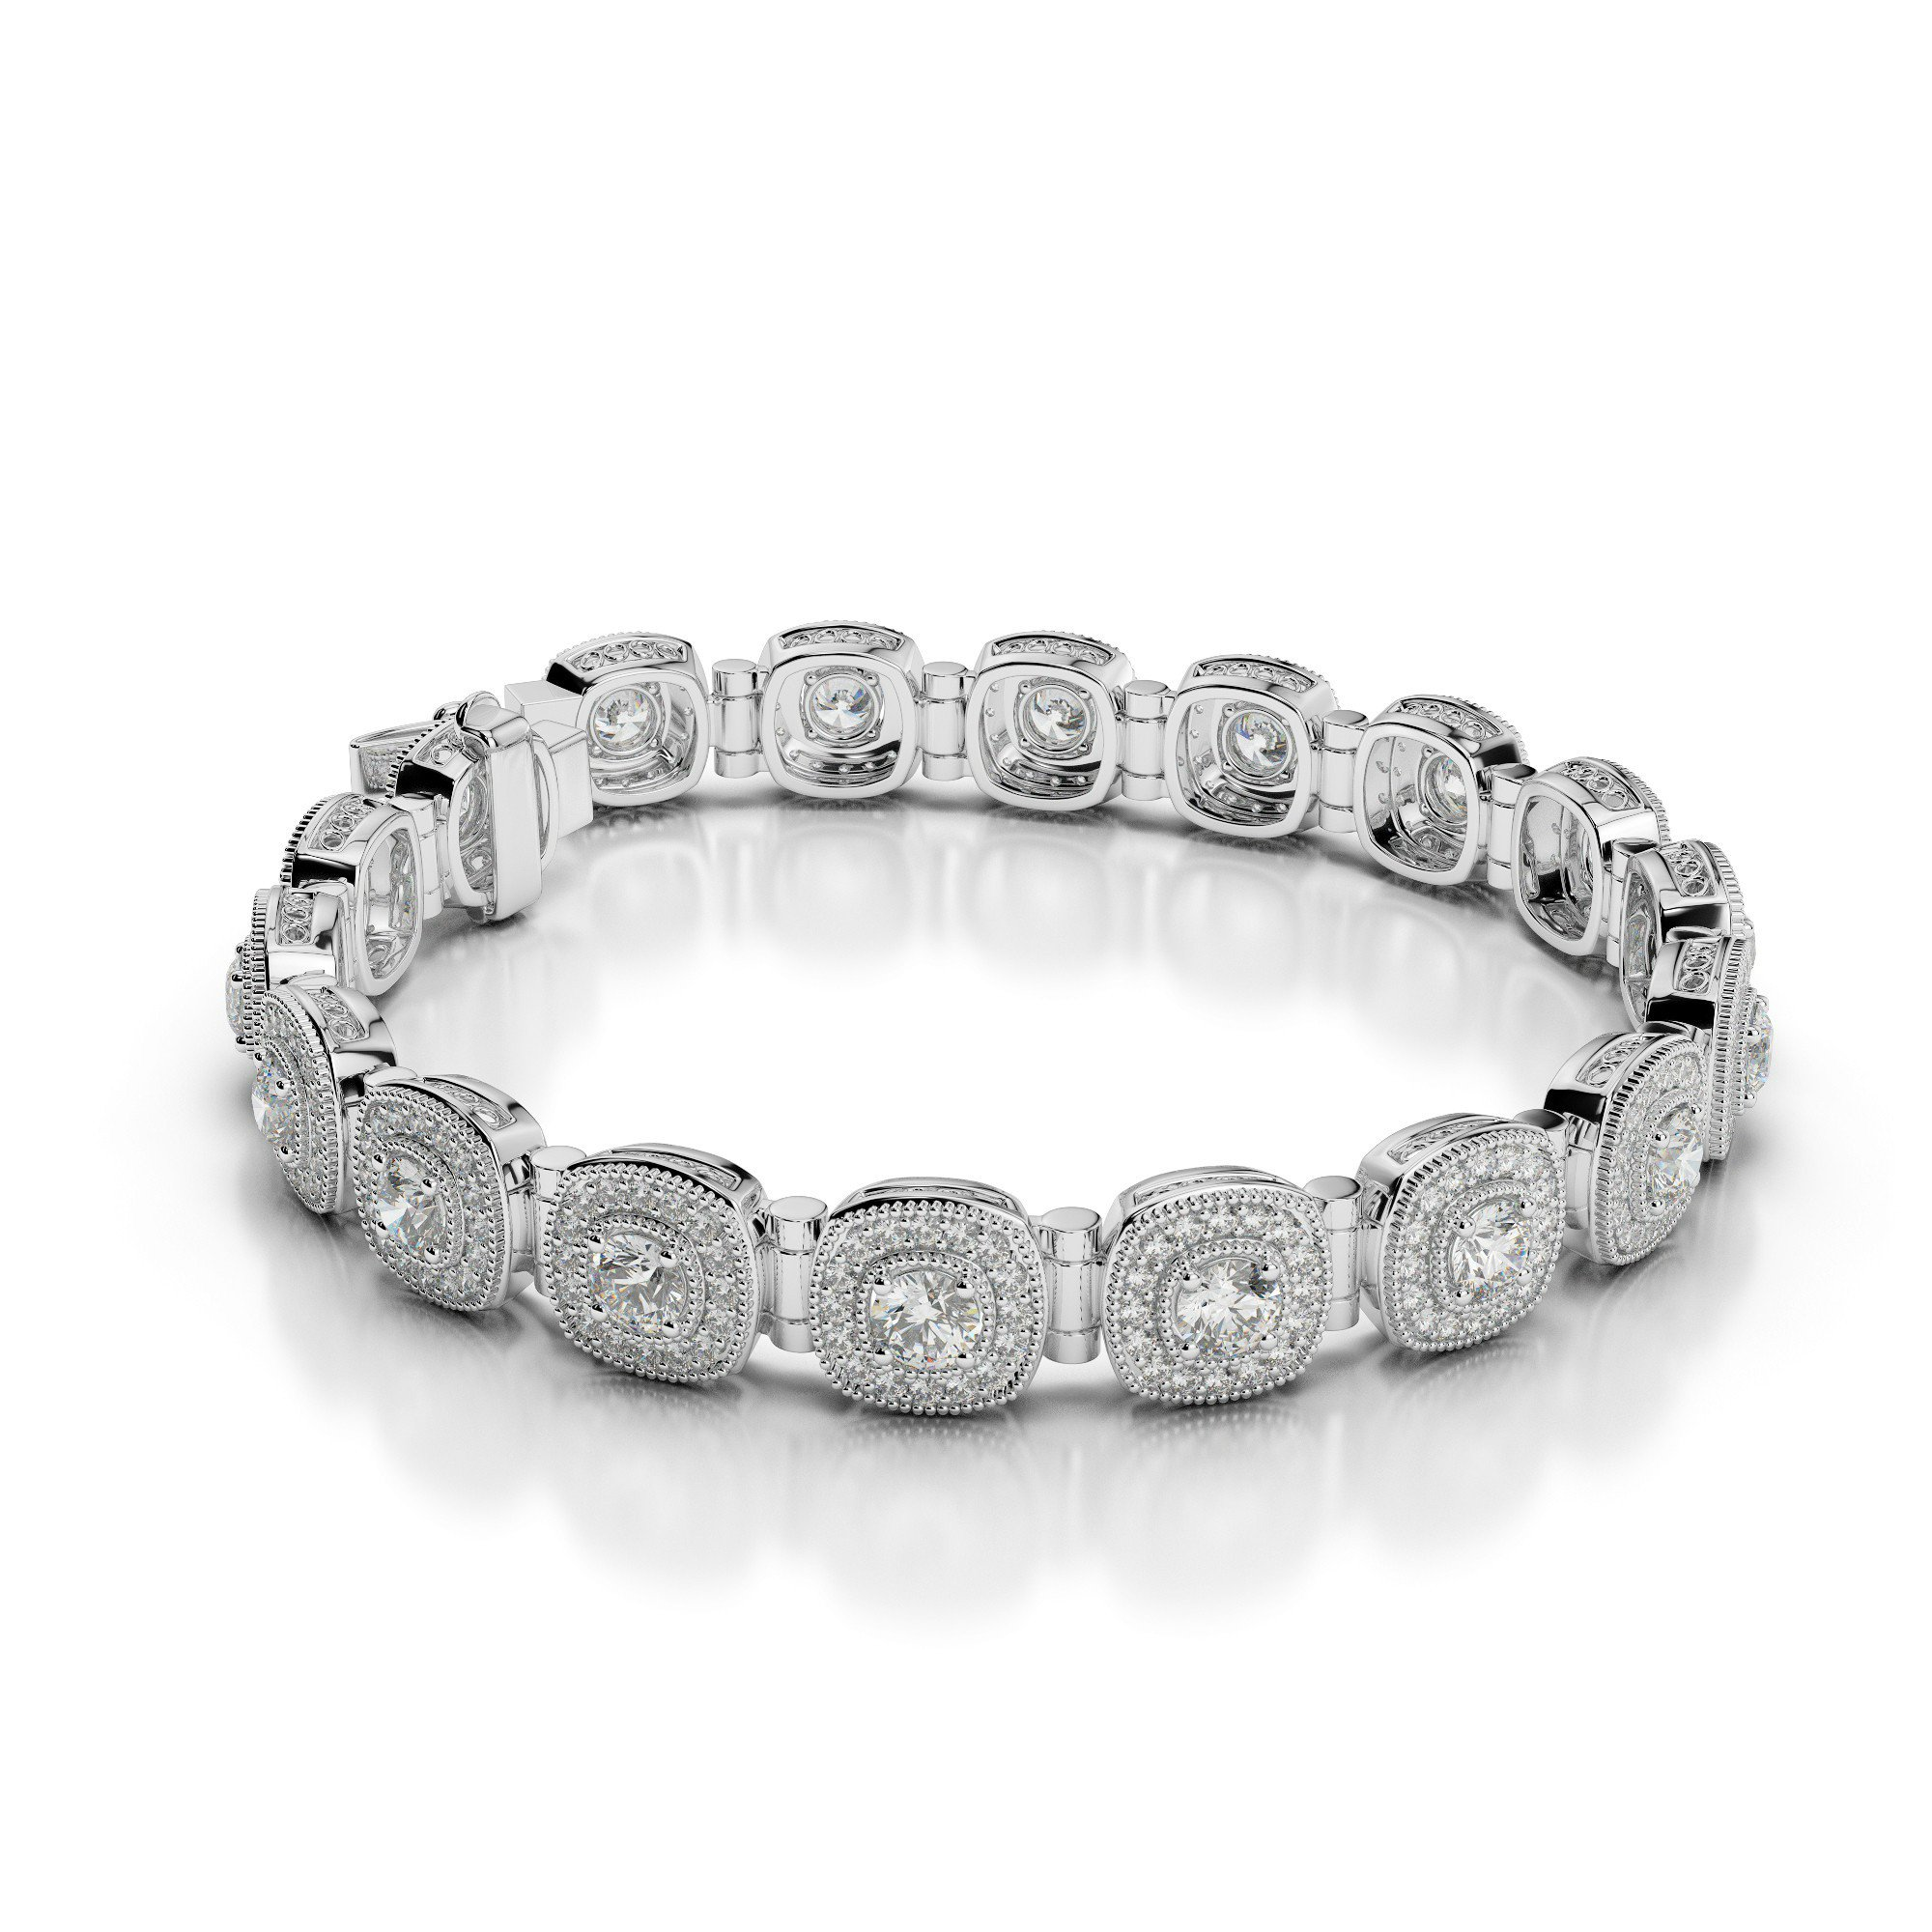 4.80 Carat Diamond Halo Bracelet